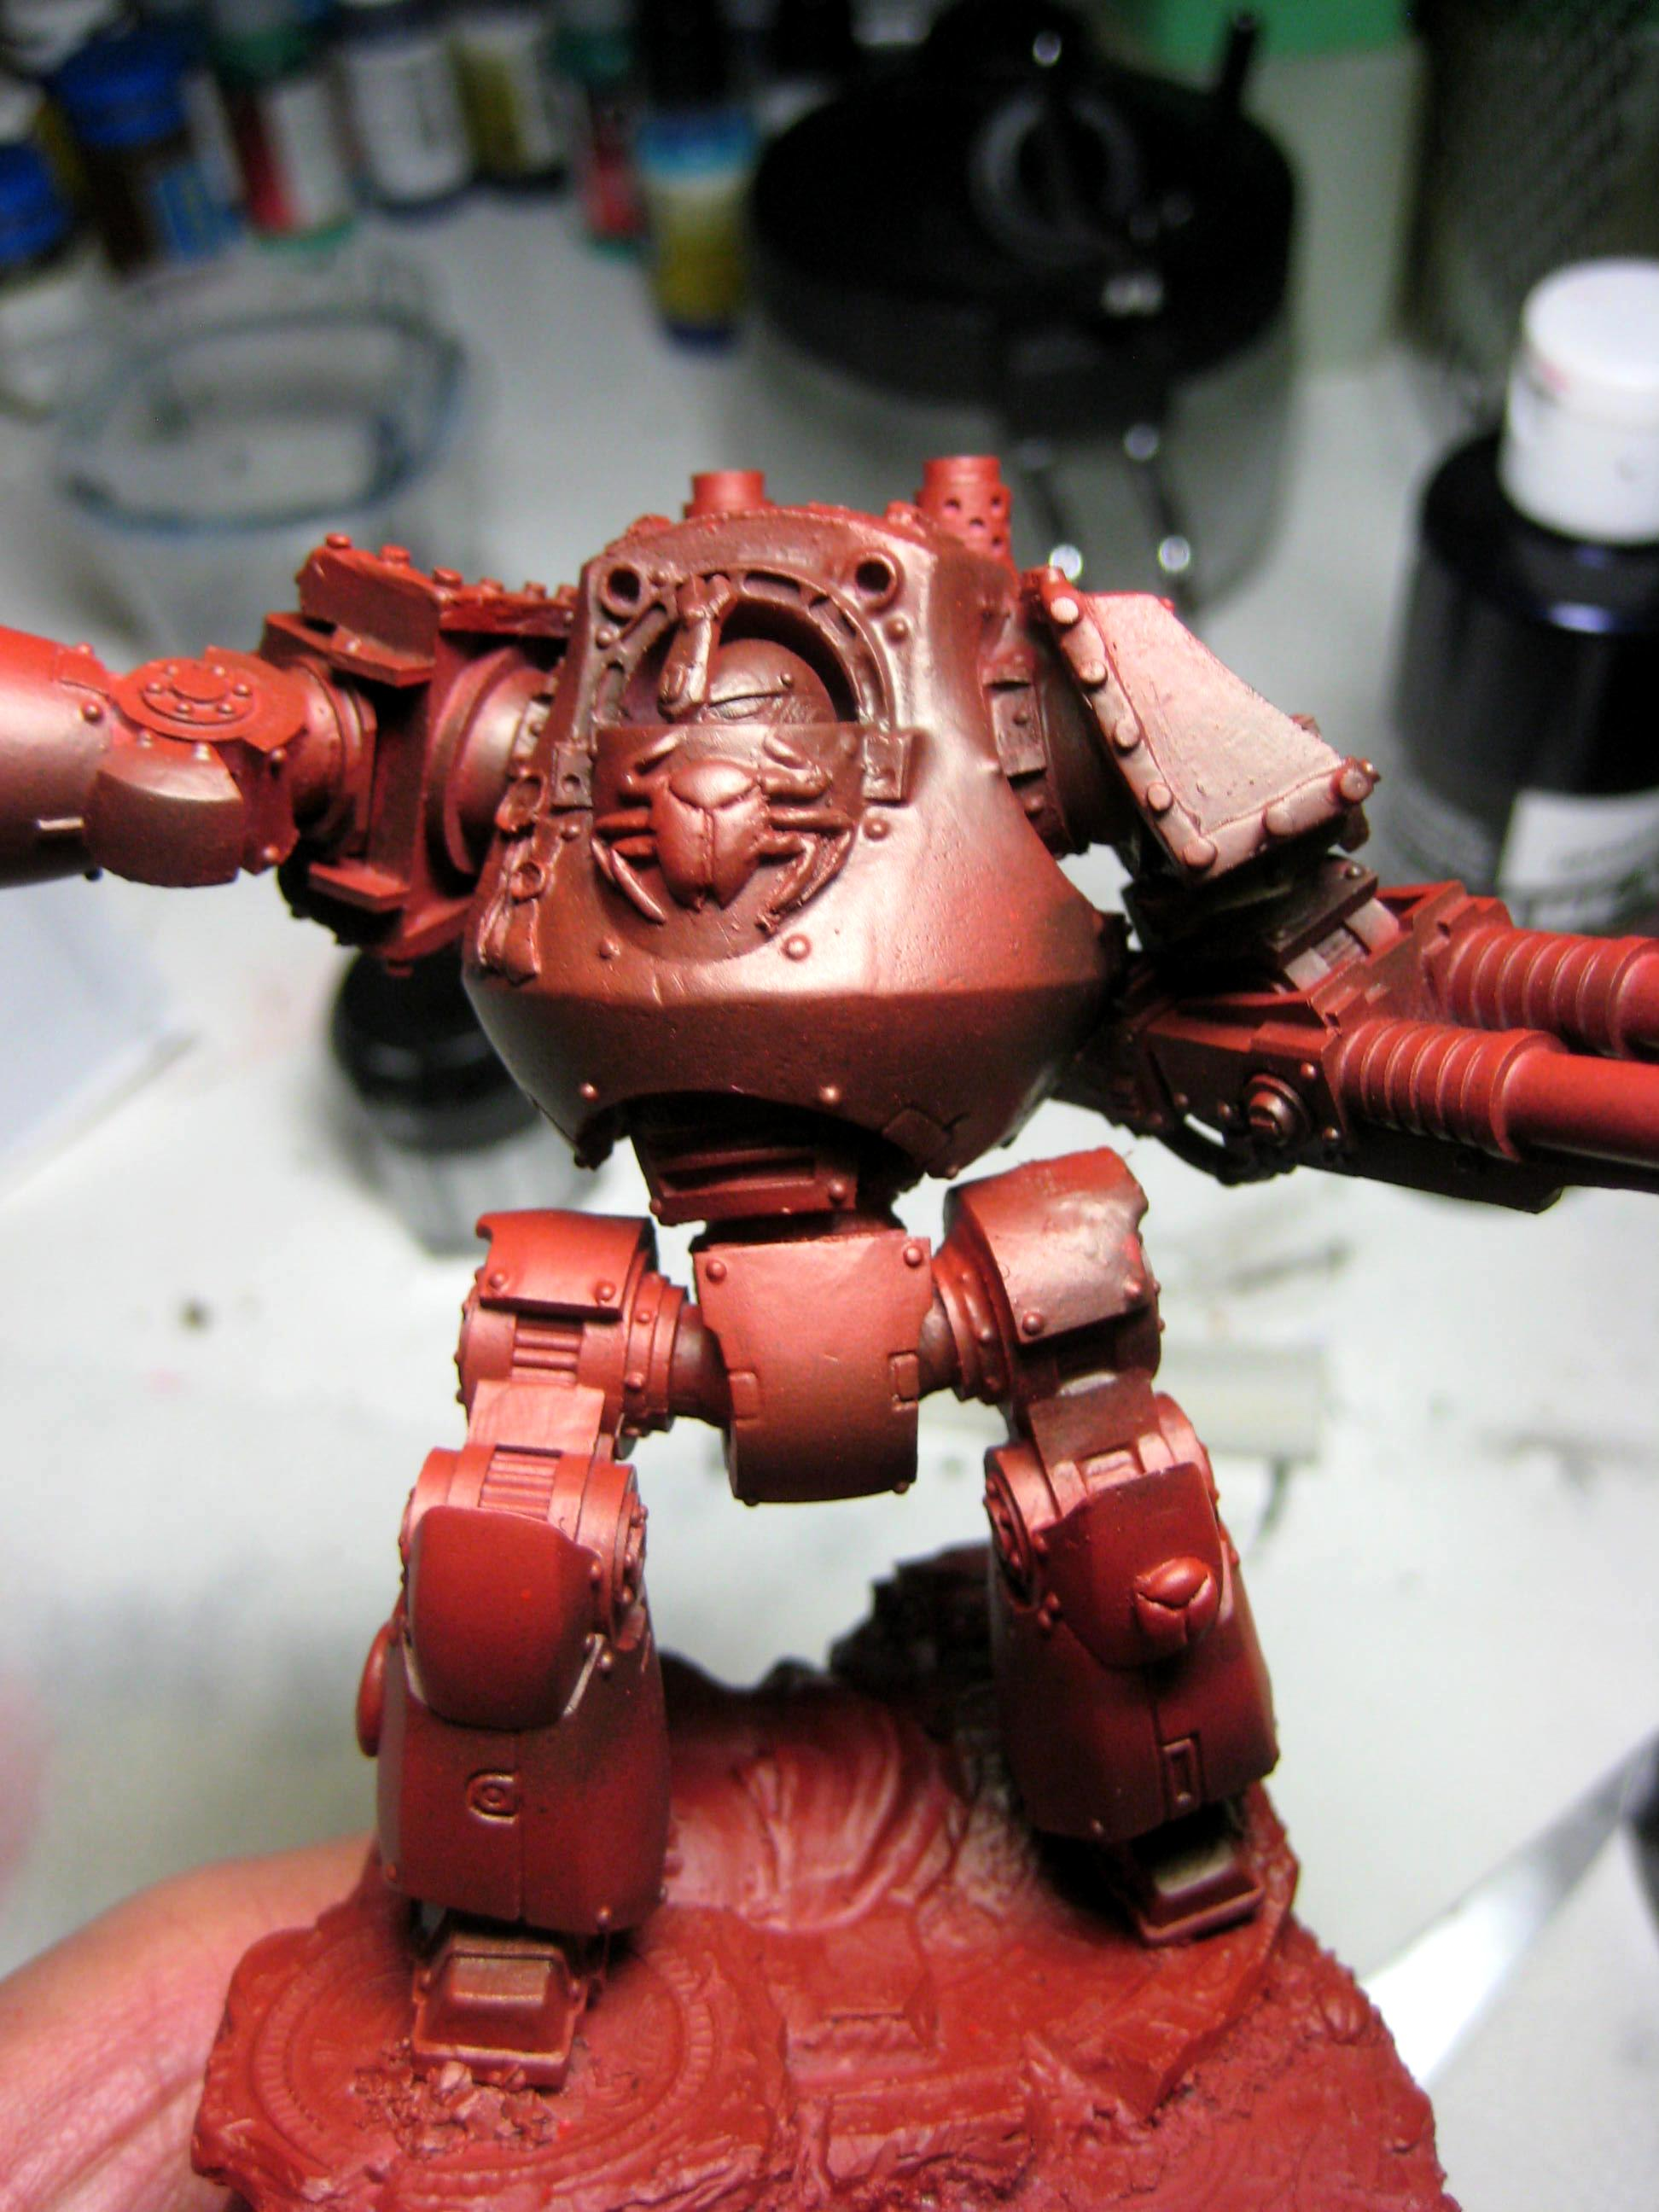 Contemptor, Conversion, Dreadnought, Forge World, Greenstuff, Pre Heresy, Thousand Sons, Warhammer 40,000